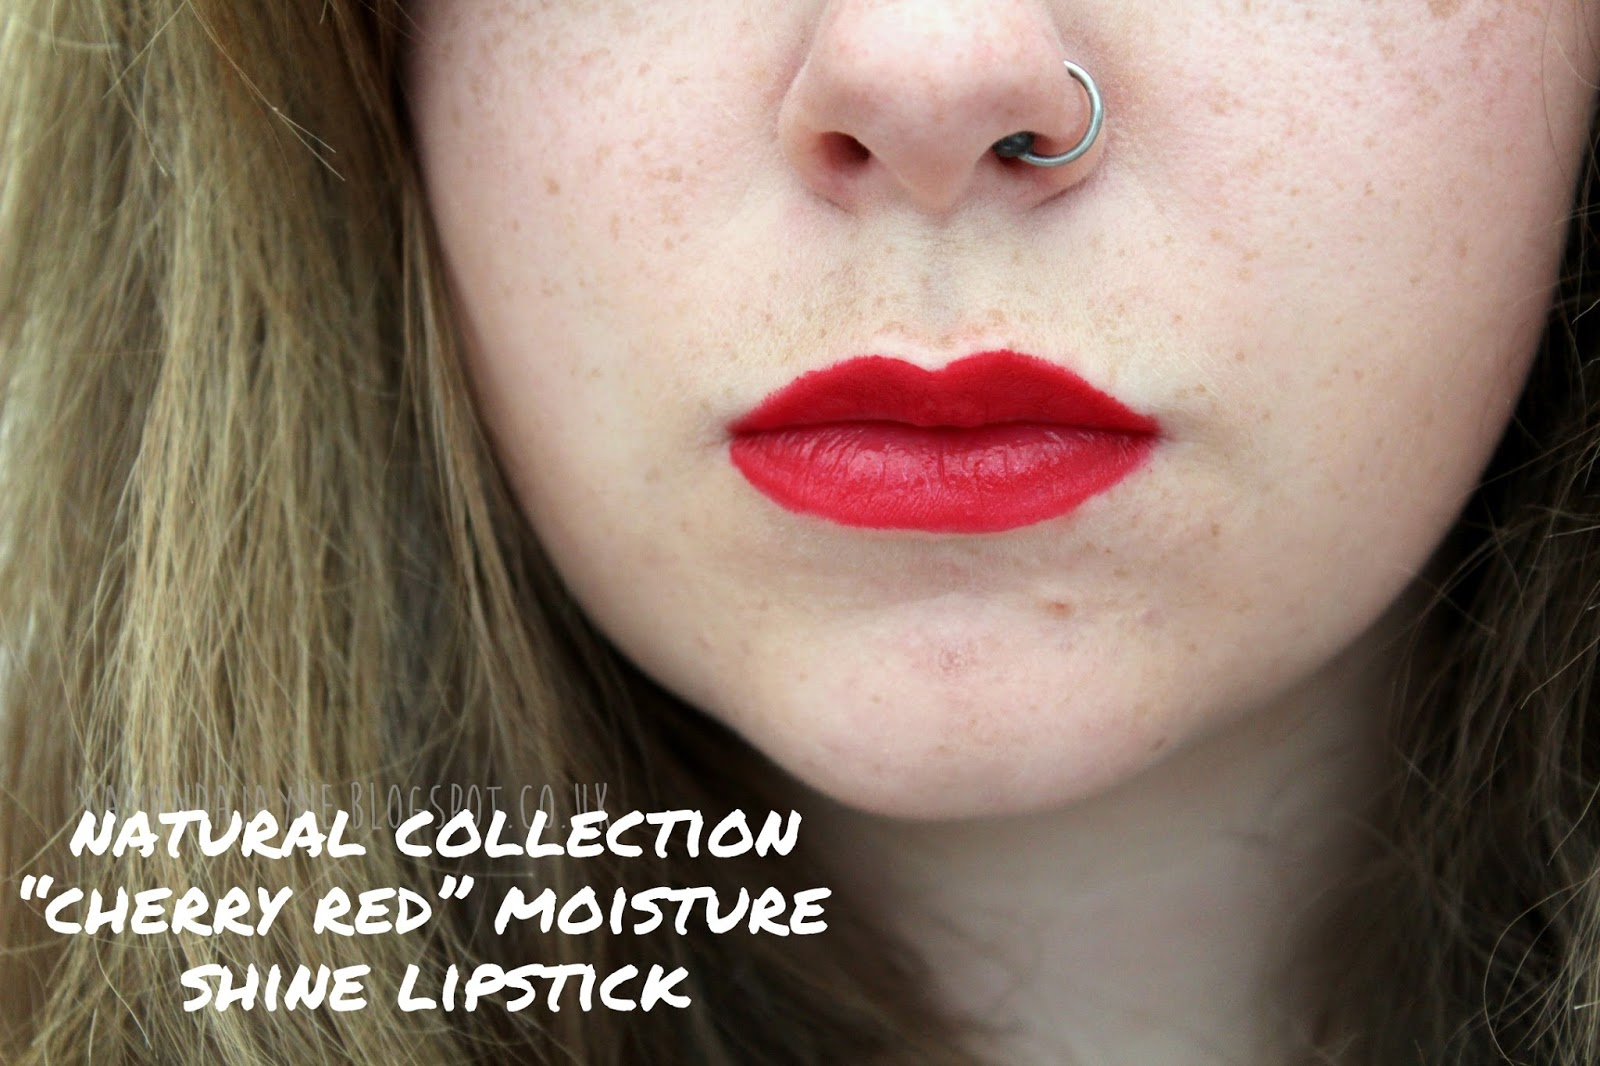 natural collection moisture shine lipstick cherry red swatch